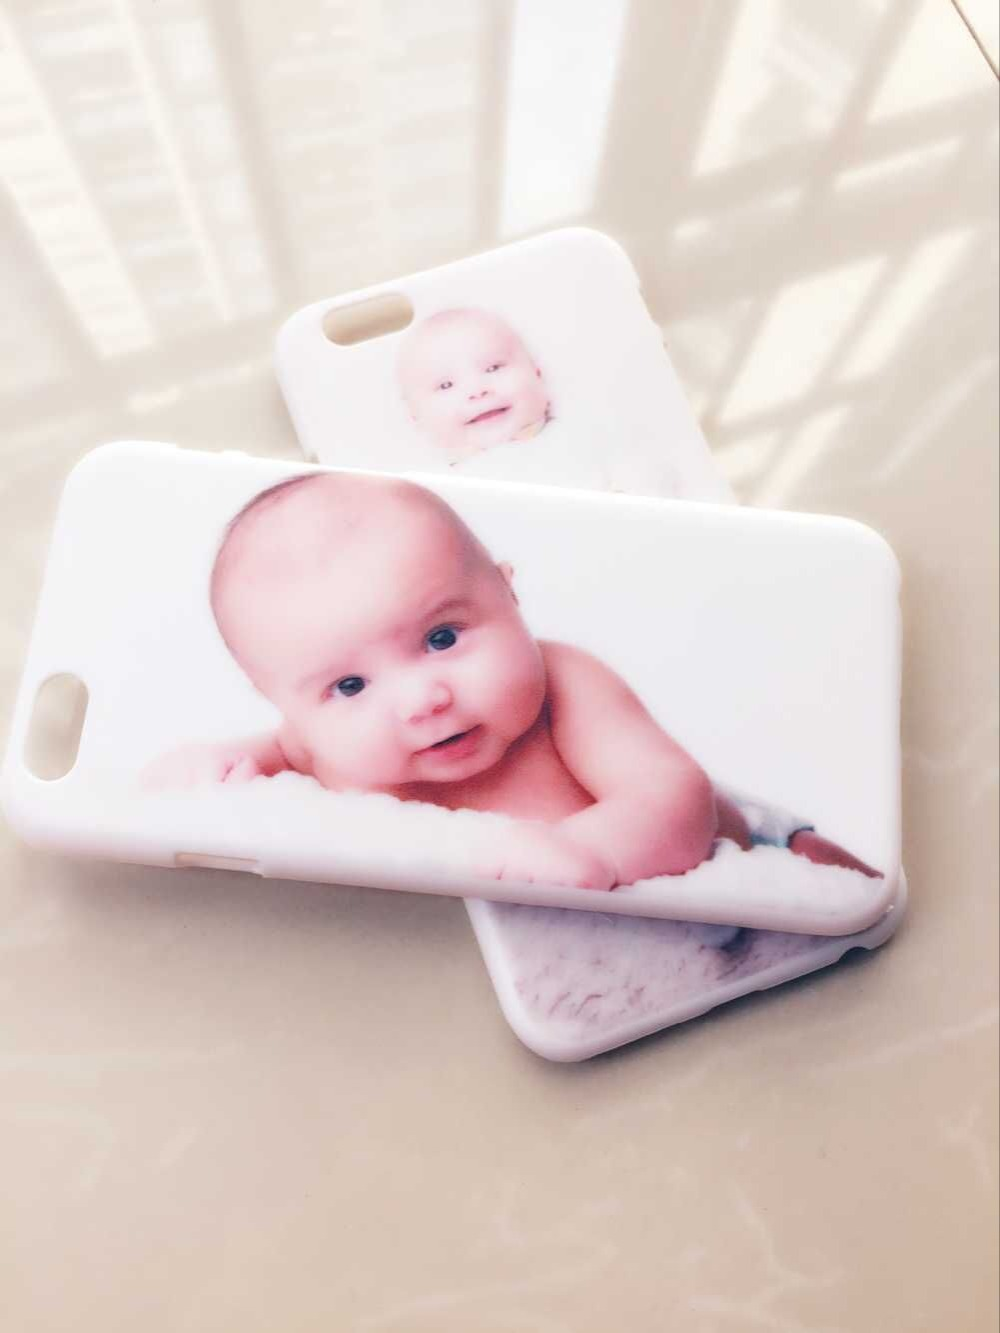 Latest Fashion Customization Printing Photos Make Phone Case Cover For iPhone 4 4S 5 5S 5C 6 6S 6PLUS 6 PLUS Samsung S3 S4 S5 S6(China (Mainland))